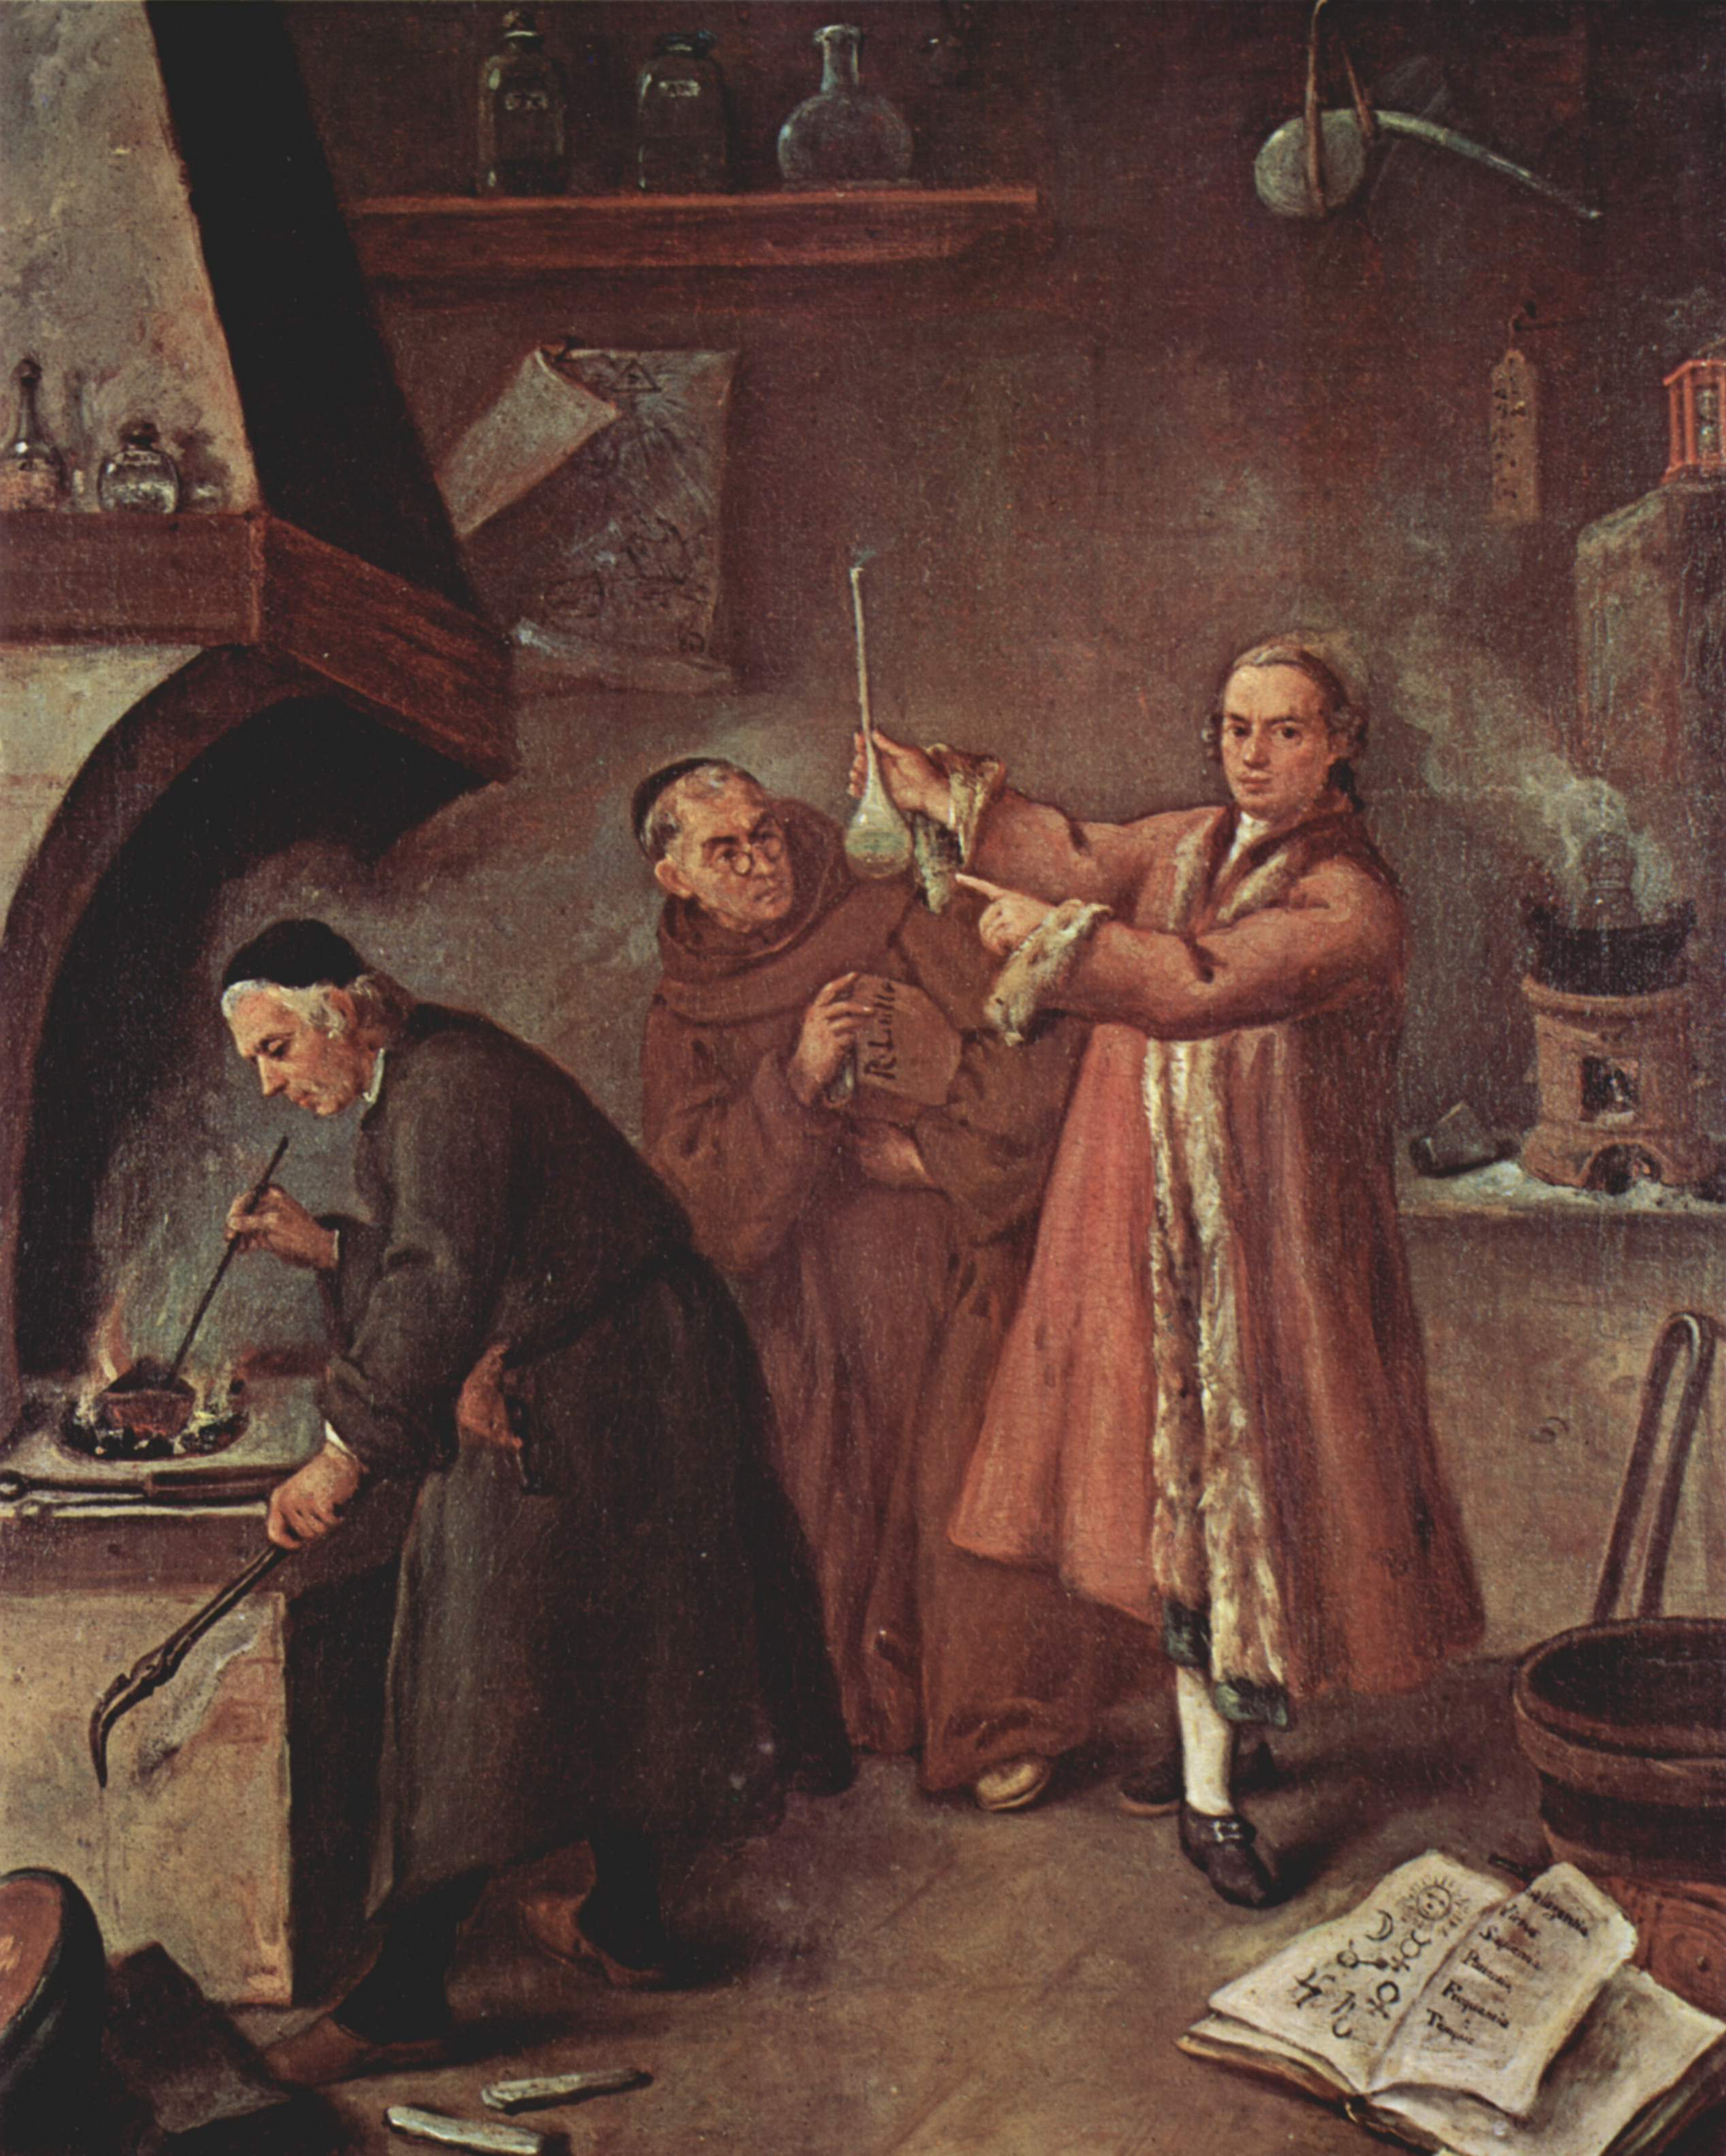 An image of The Alchemist by Pietro Longhi [Public domain]